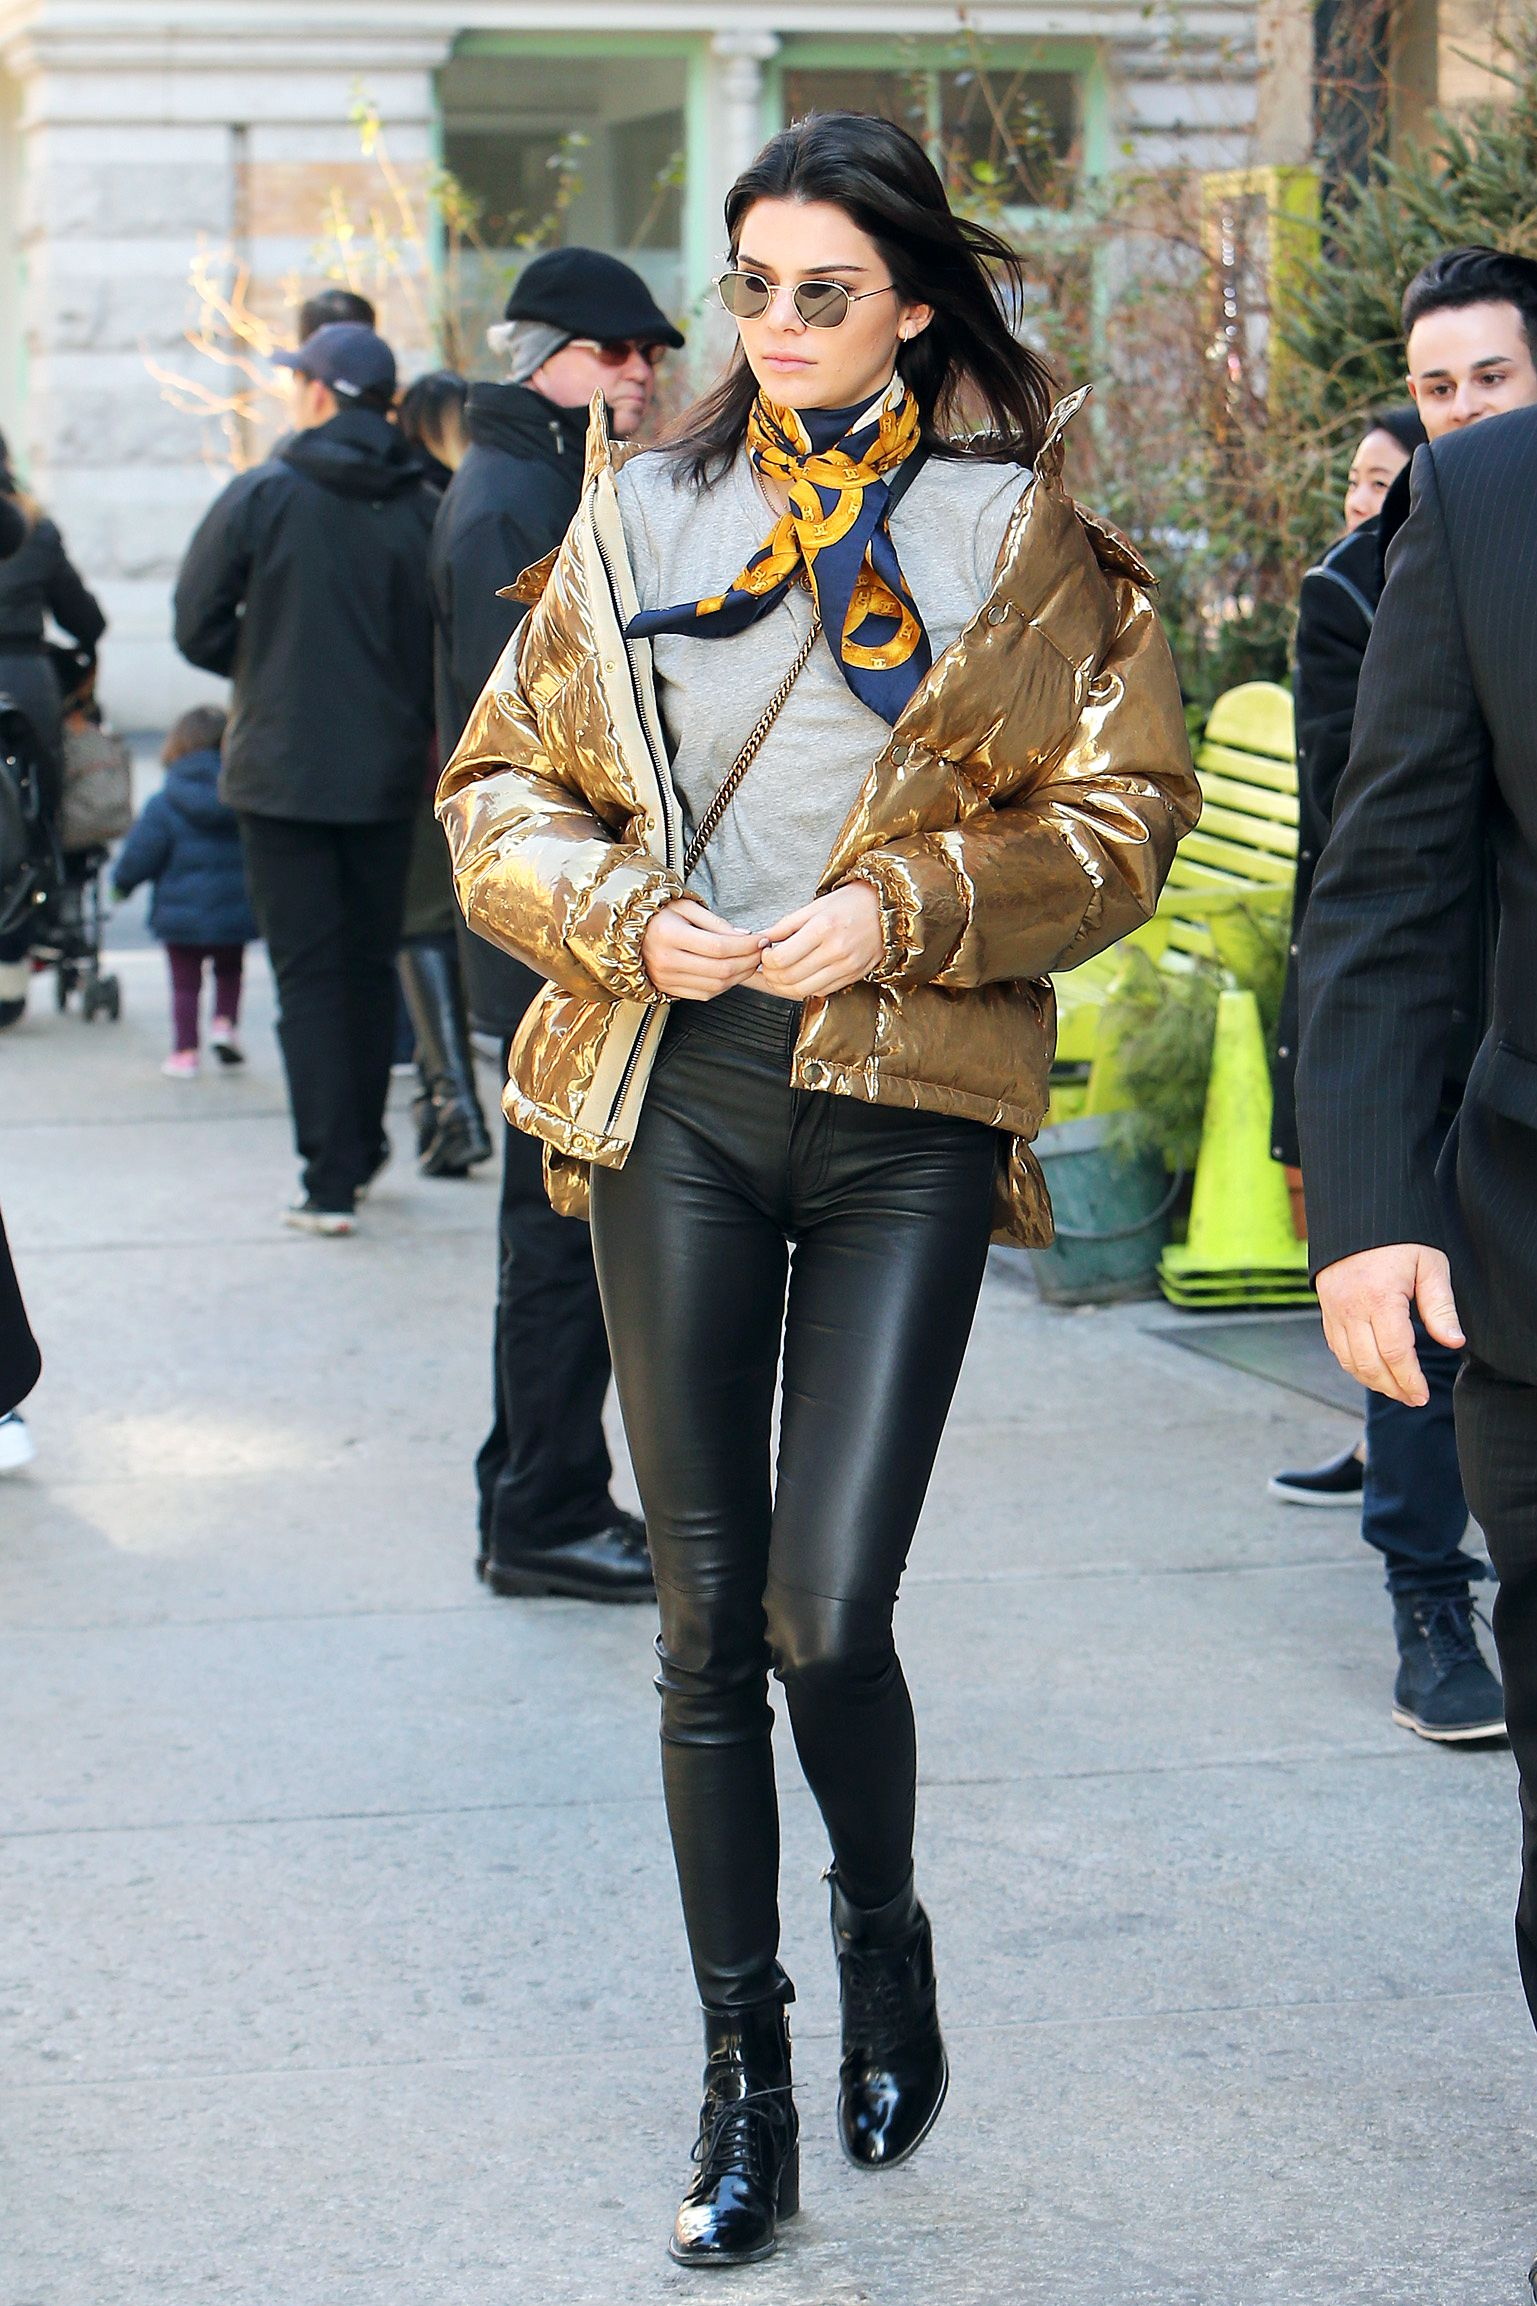 74765ed9179b Kendall Jenner Street Style - Kendall Jenner s Best Fashion Looks